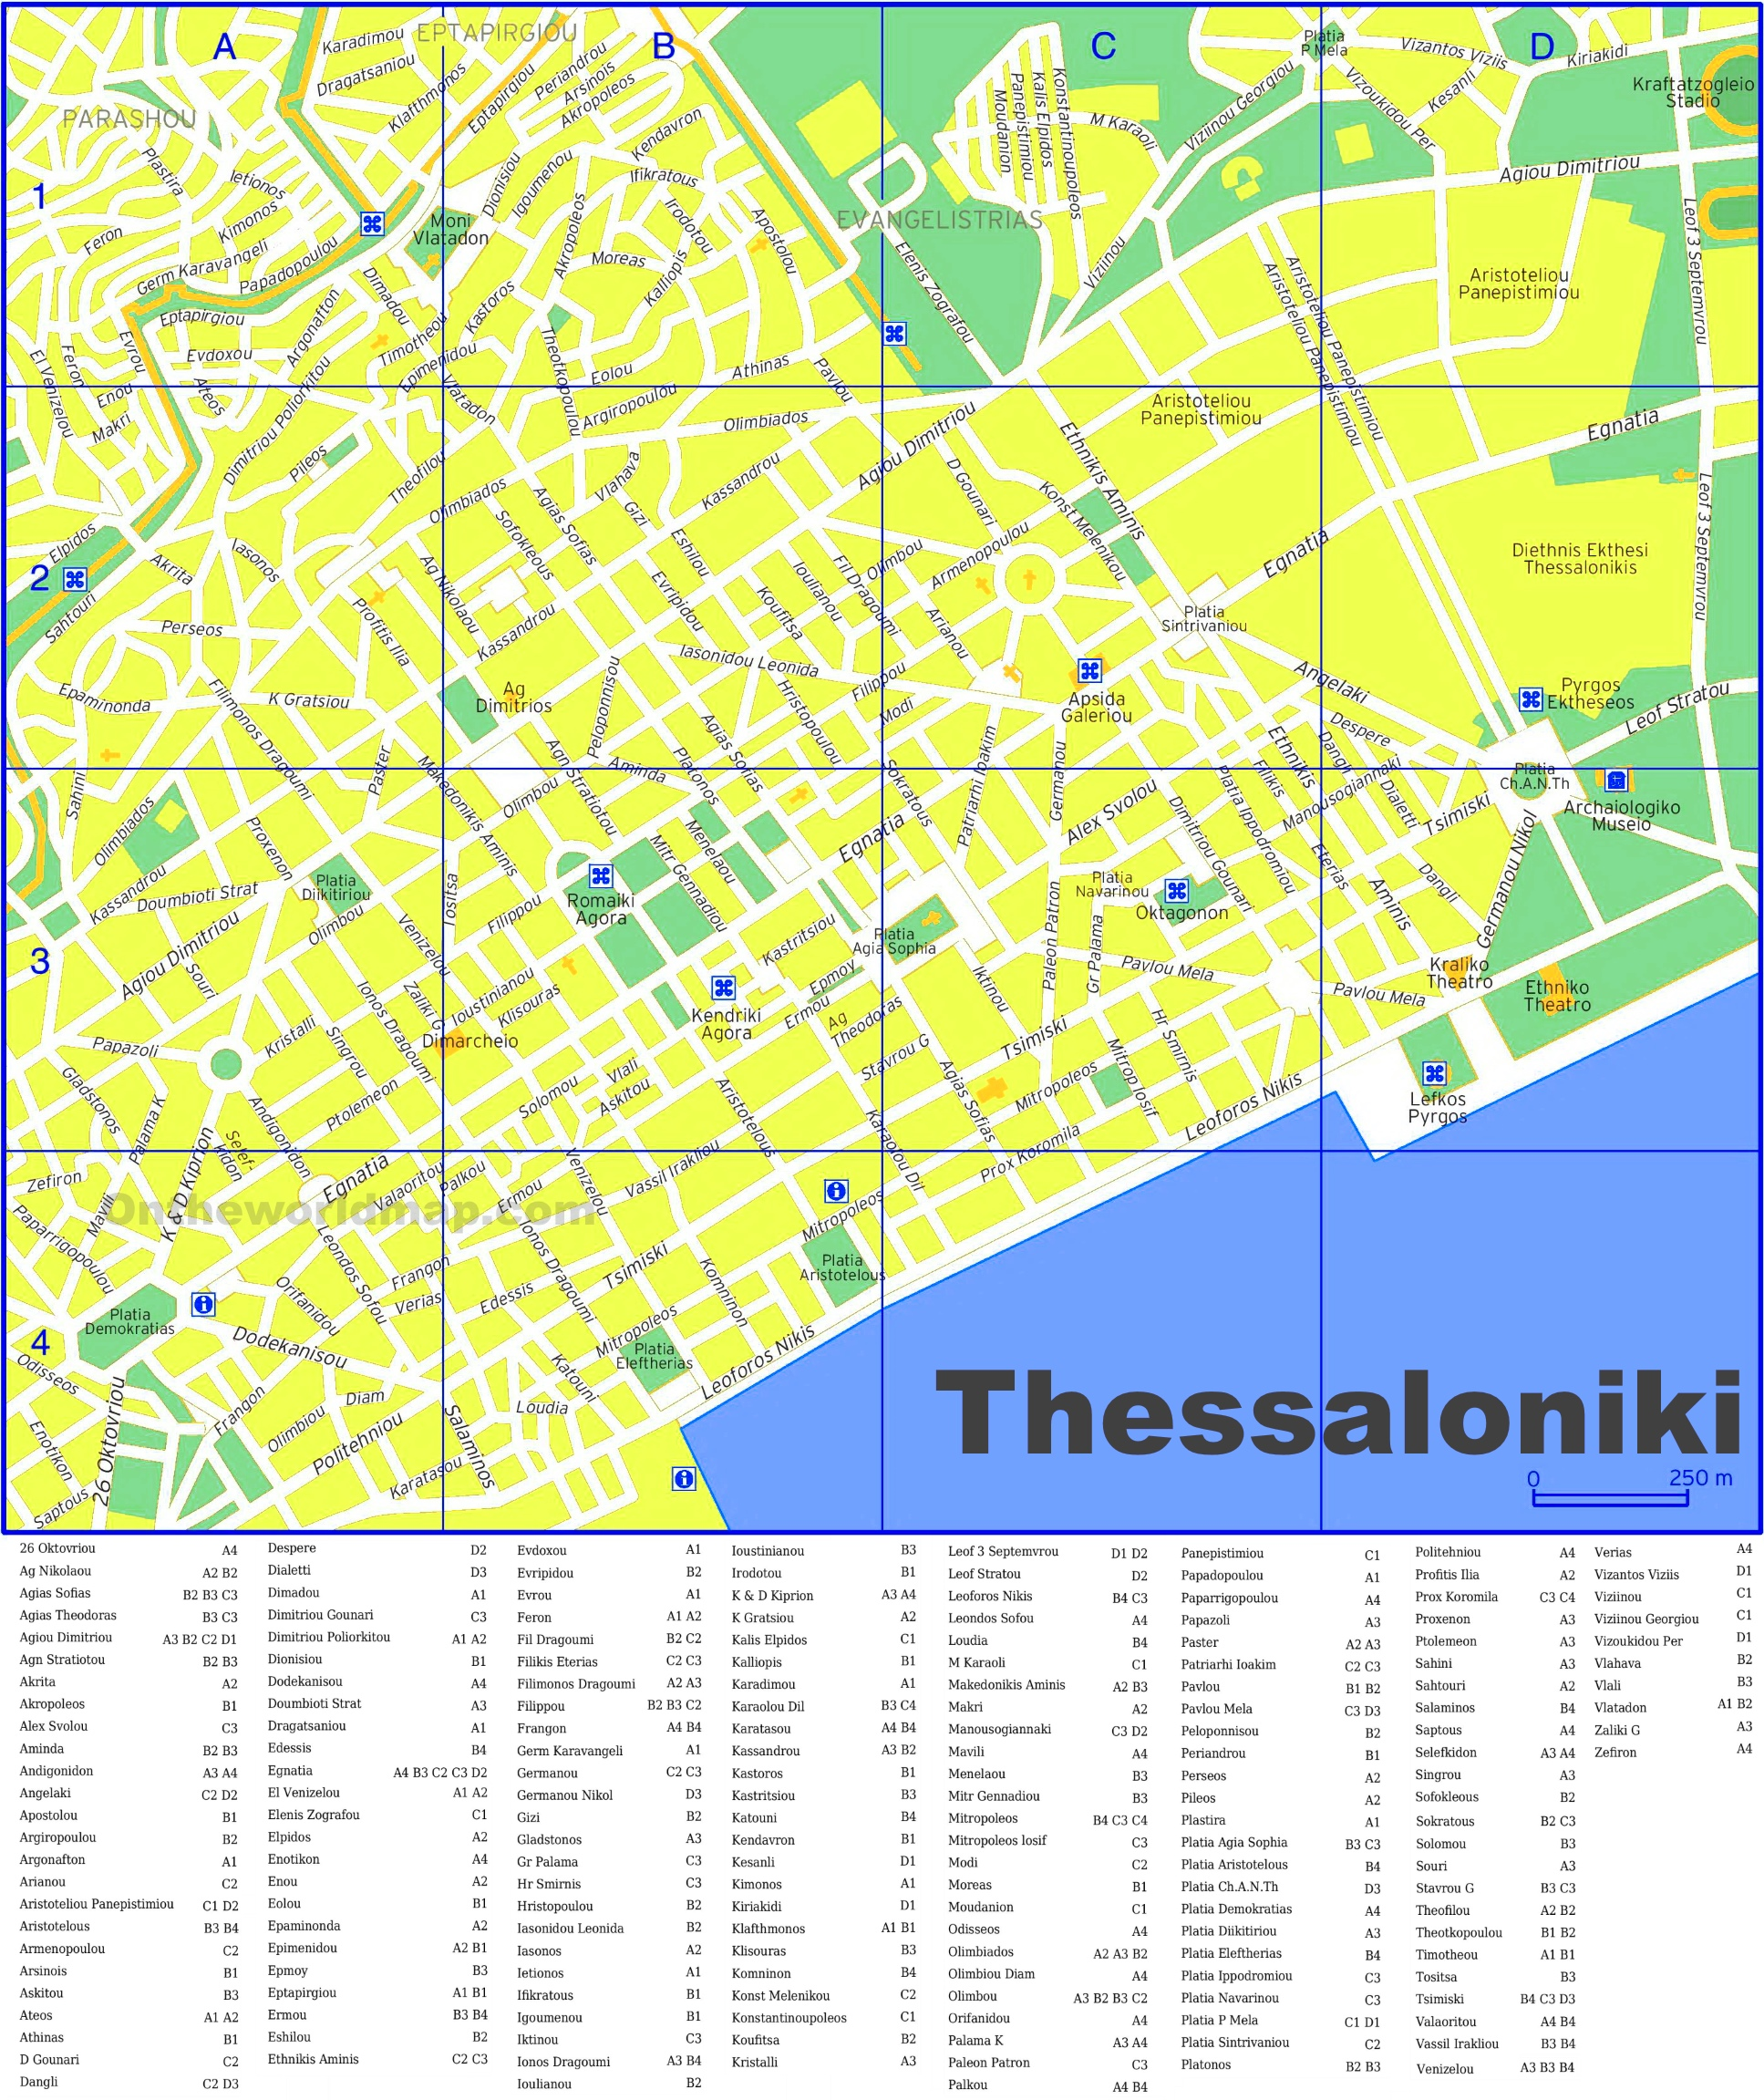 Thessaloniki street map